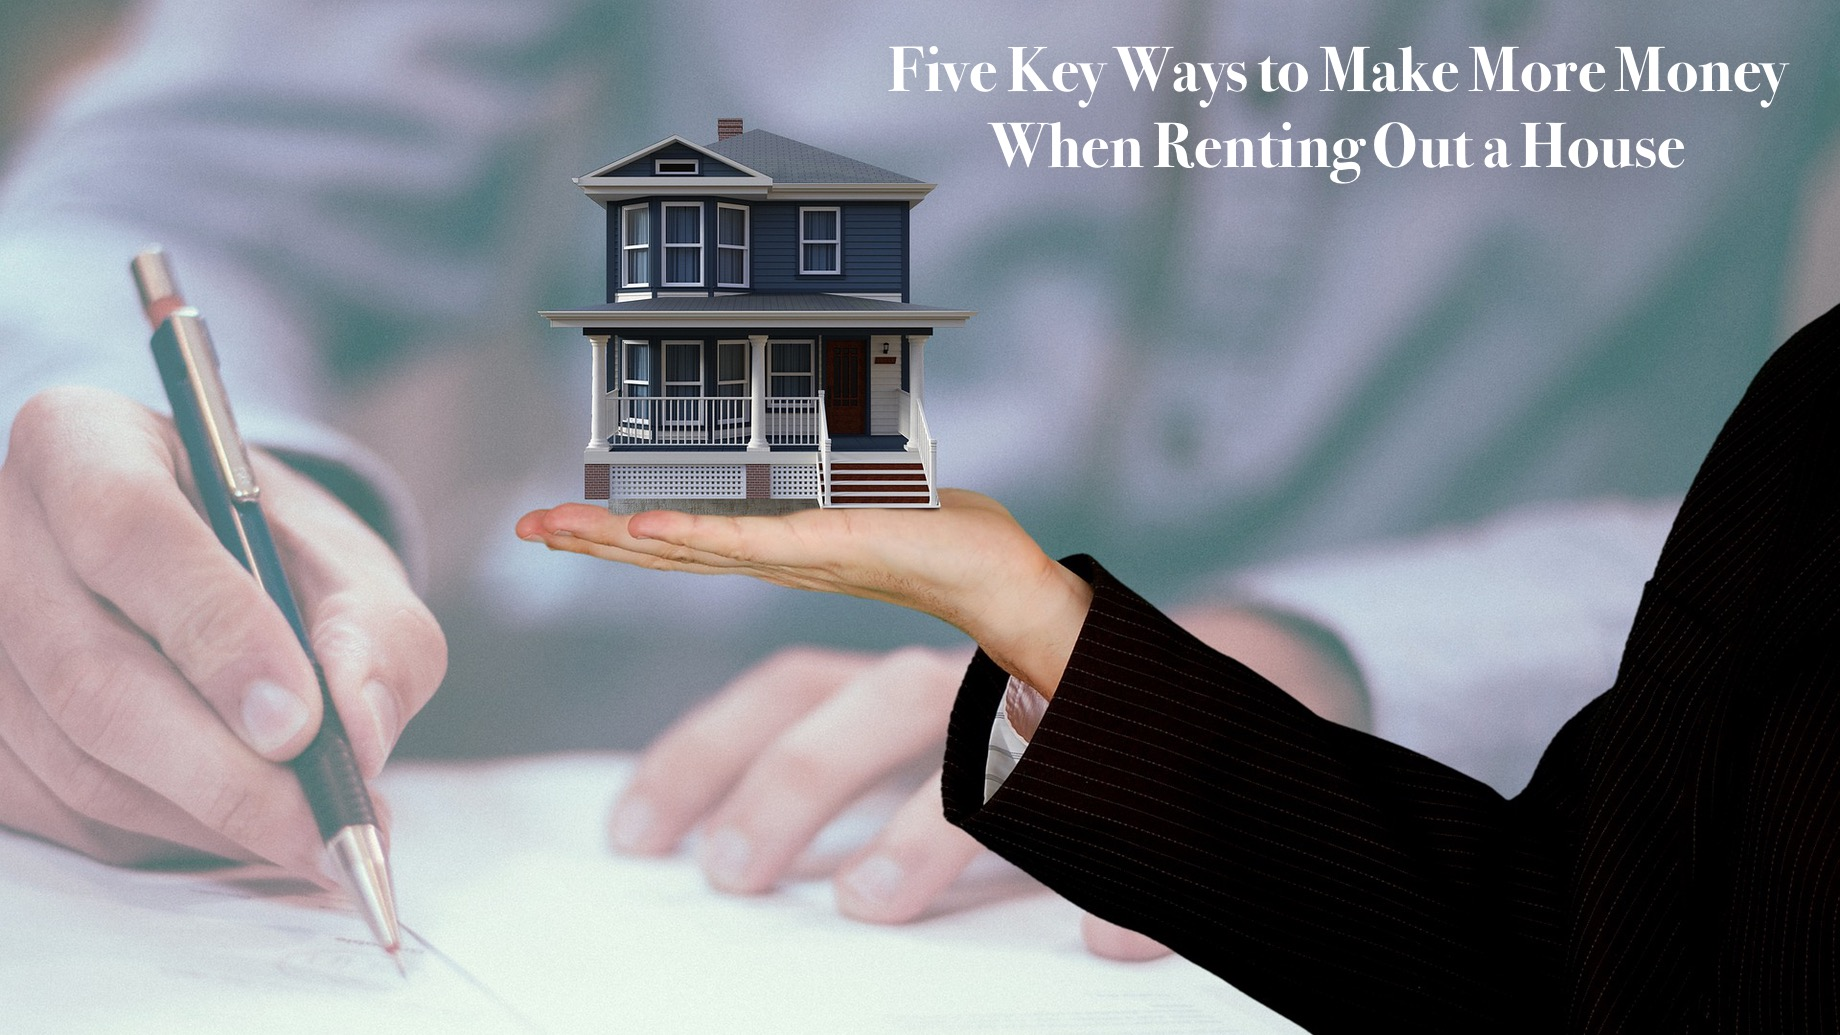 Five Key Ways to Make More Money When Renting Out a House